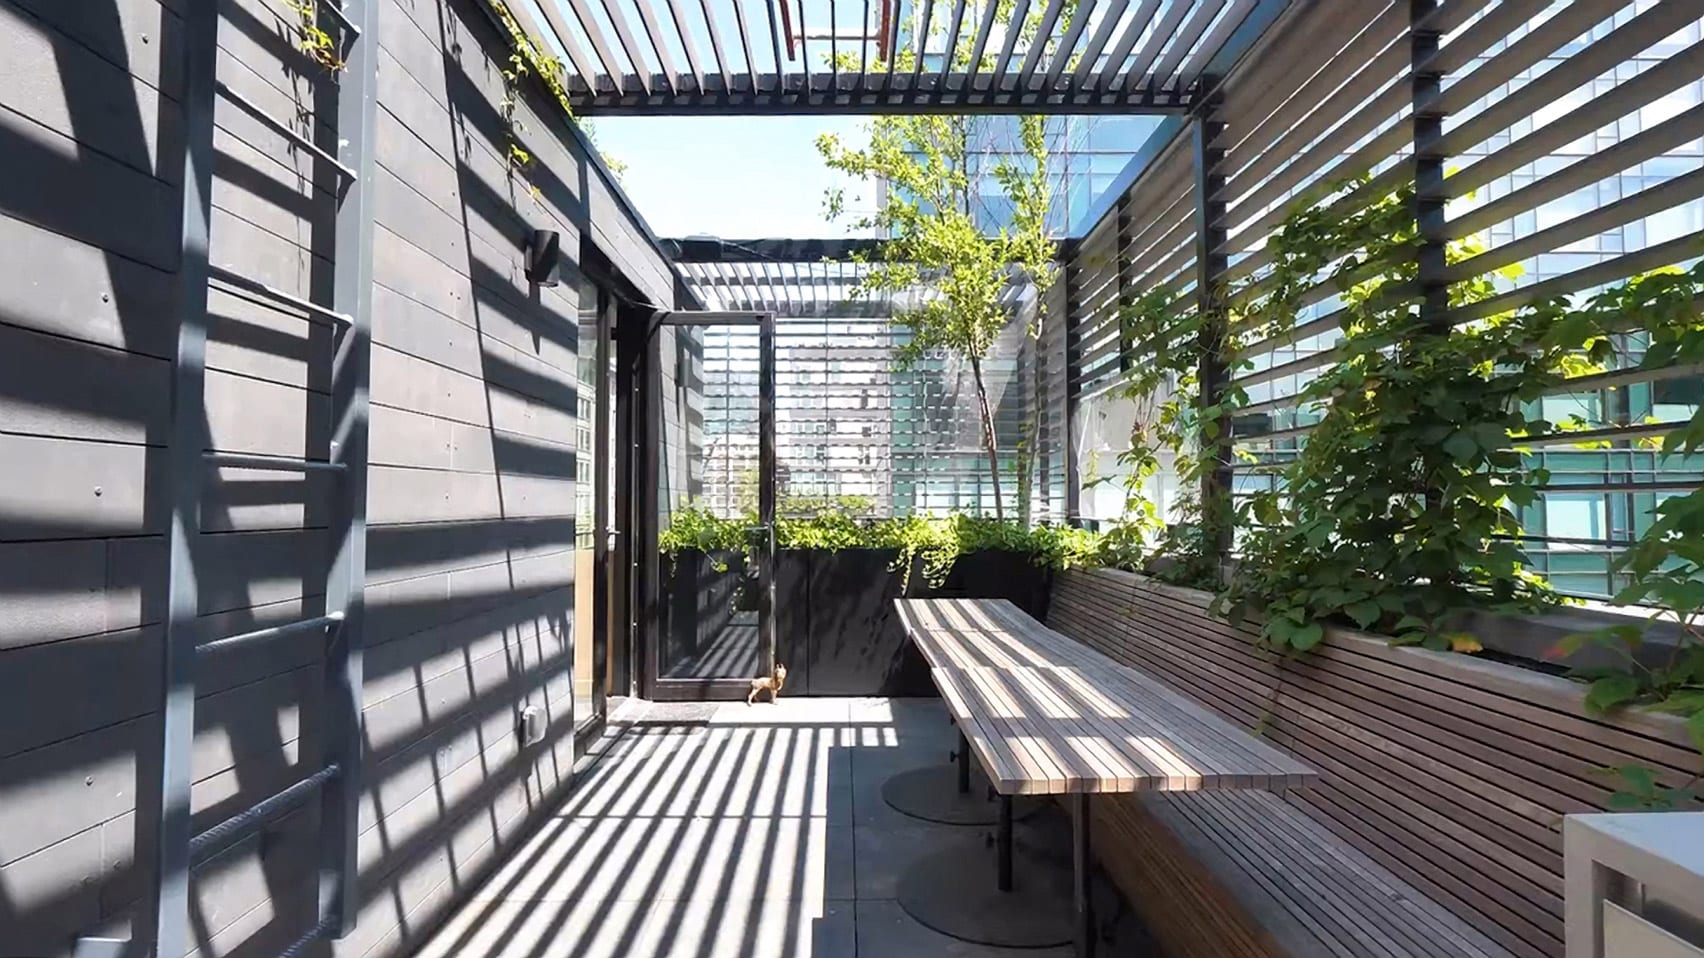 Dining area on roof terrace